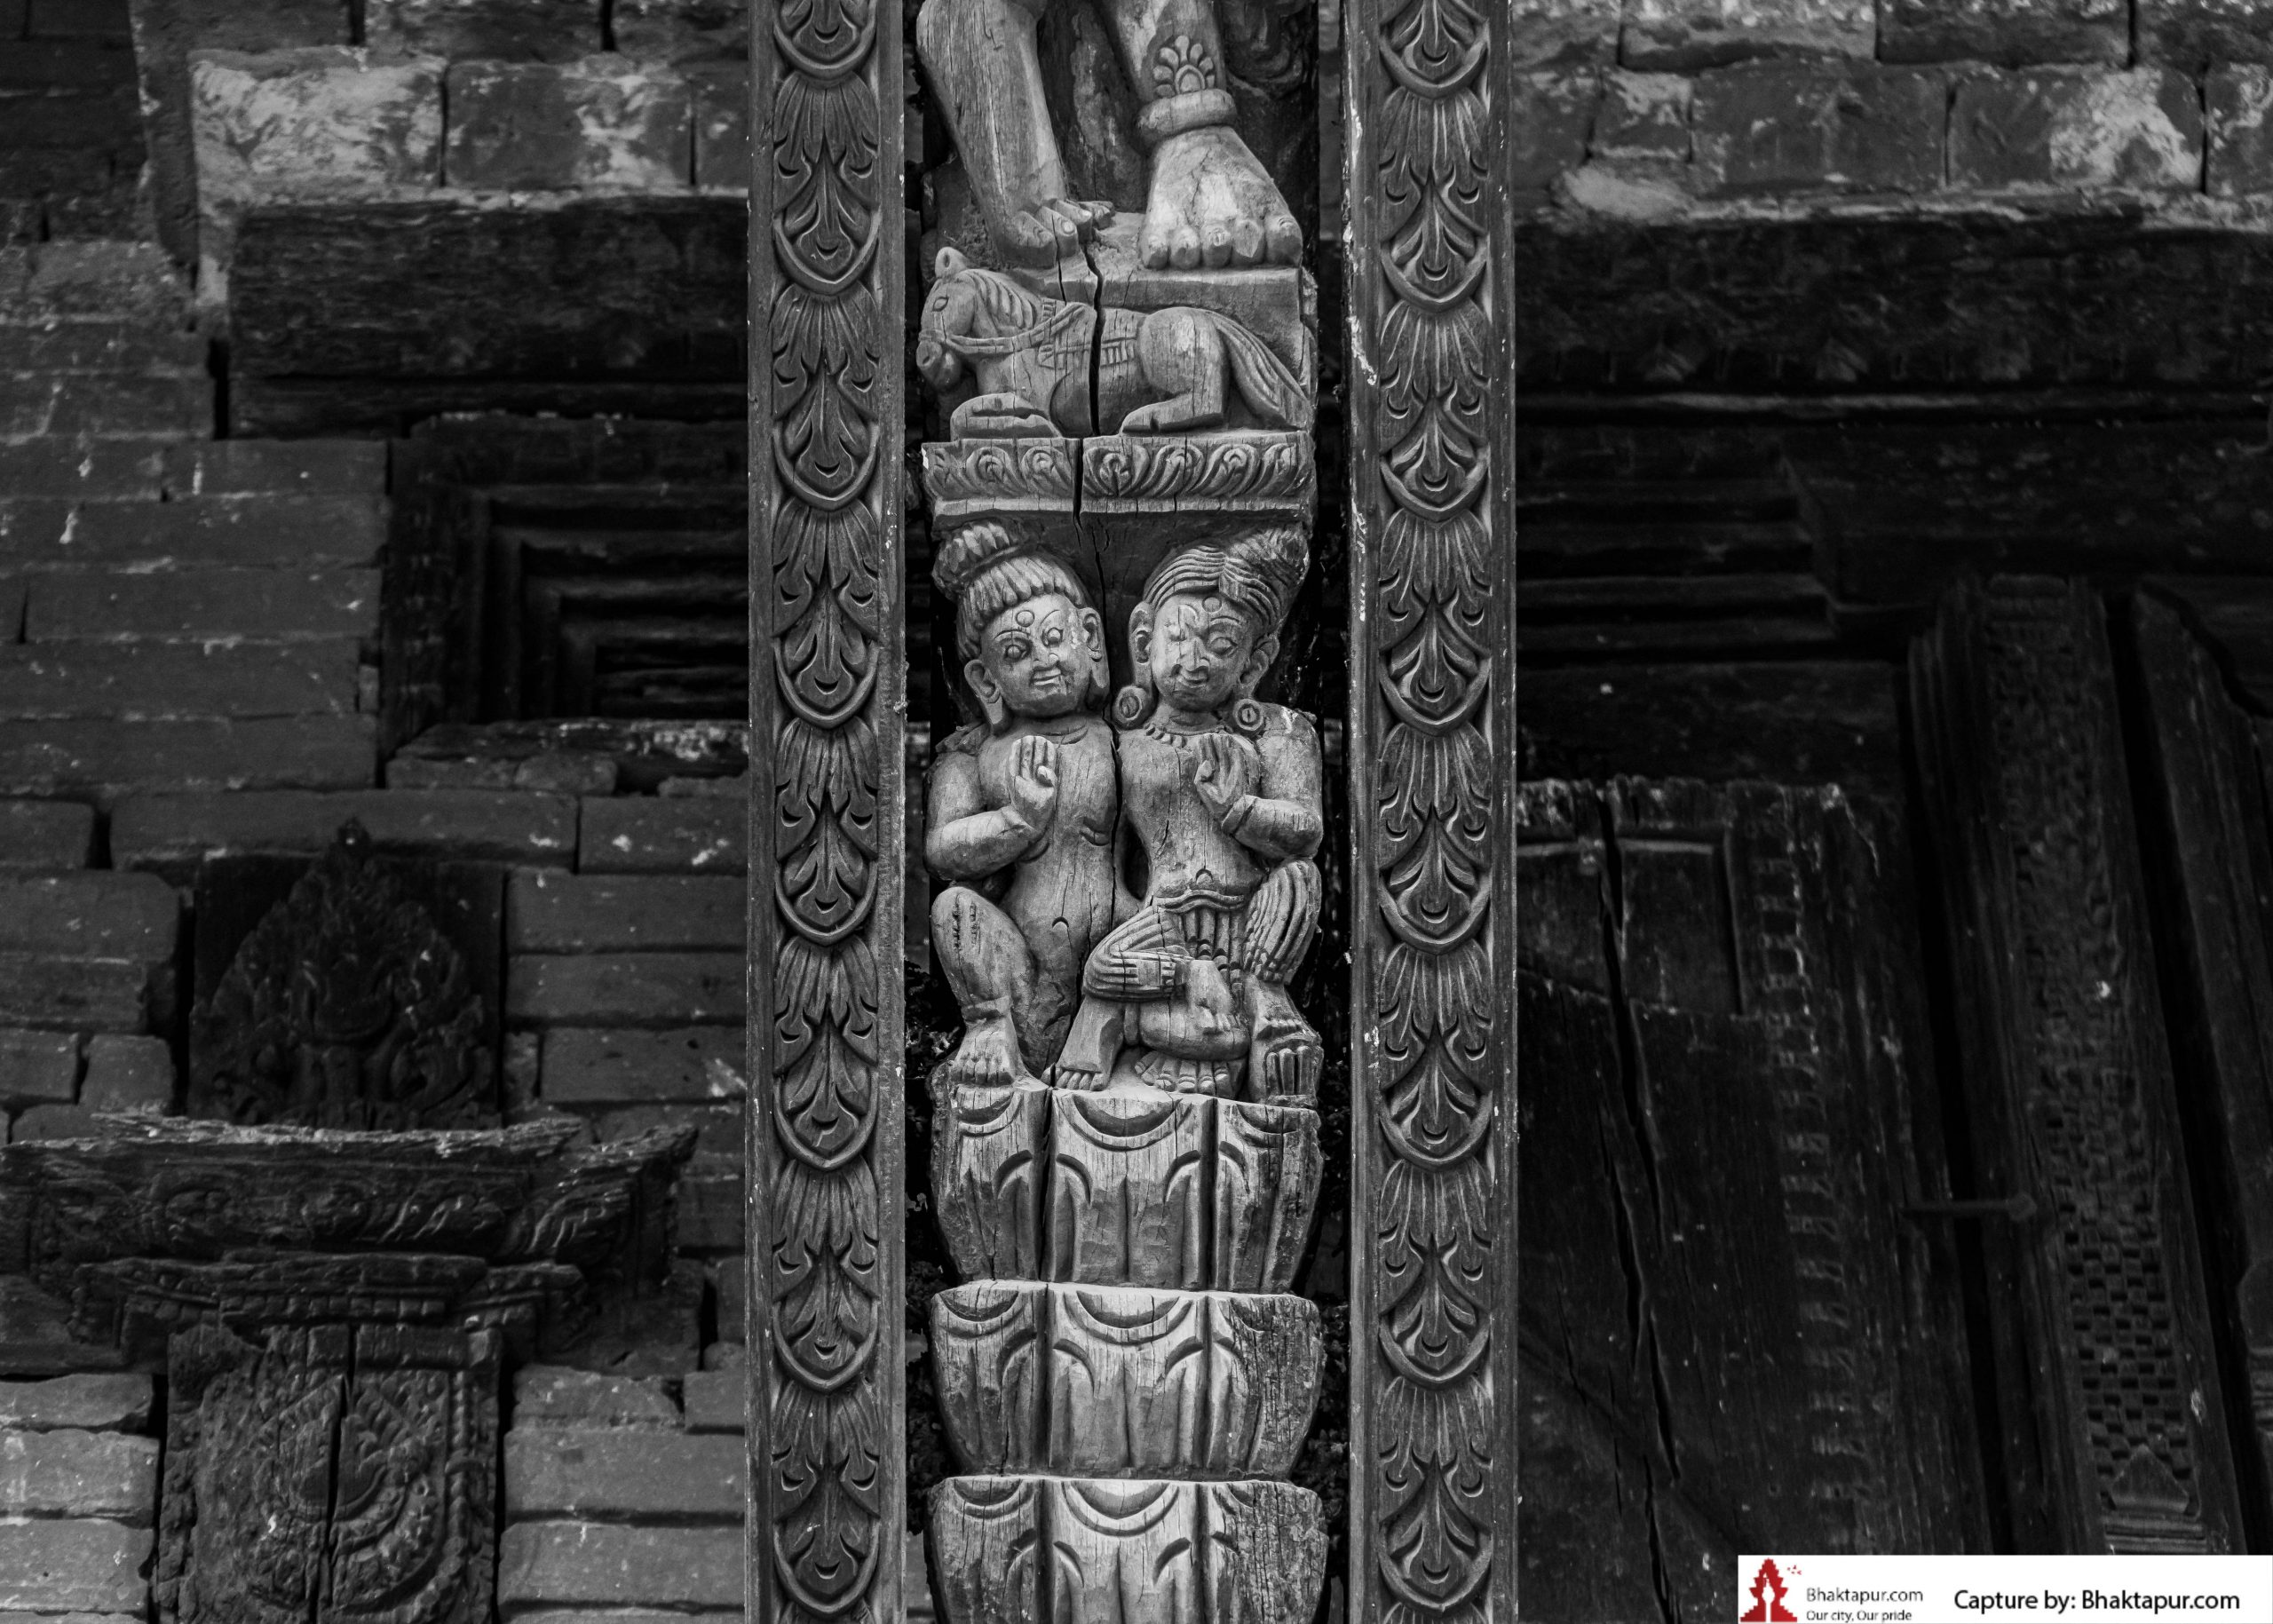 https://www.bhaktapur.com/wp-content/uploads/2021/08/erotic-carving-107-of-137-scaled.jpg